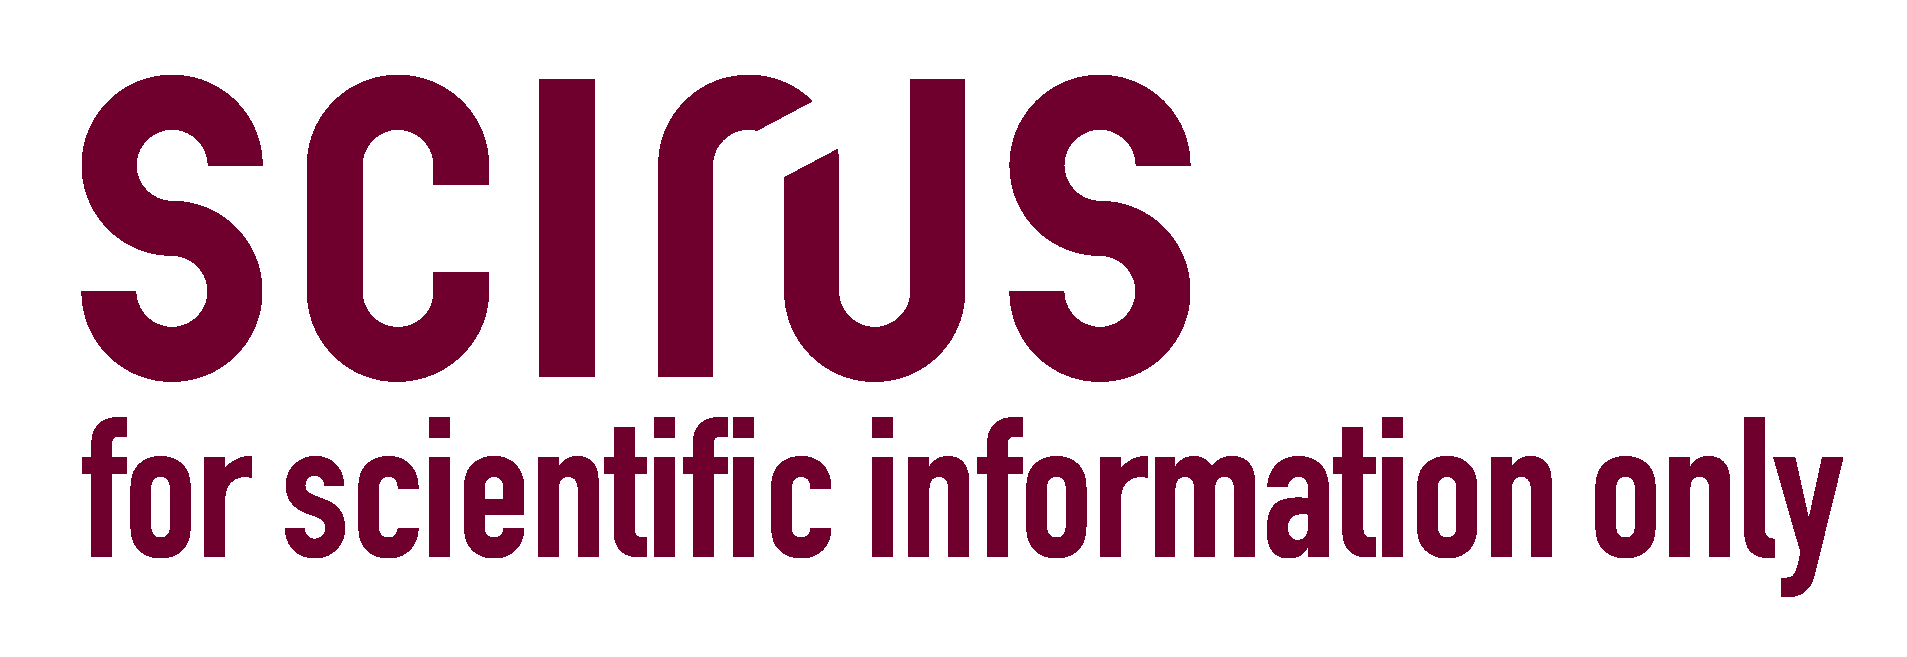 Scirus, the science-focused search engine image